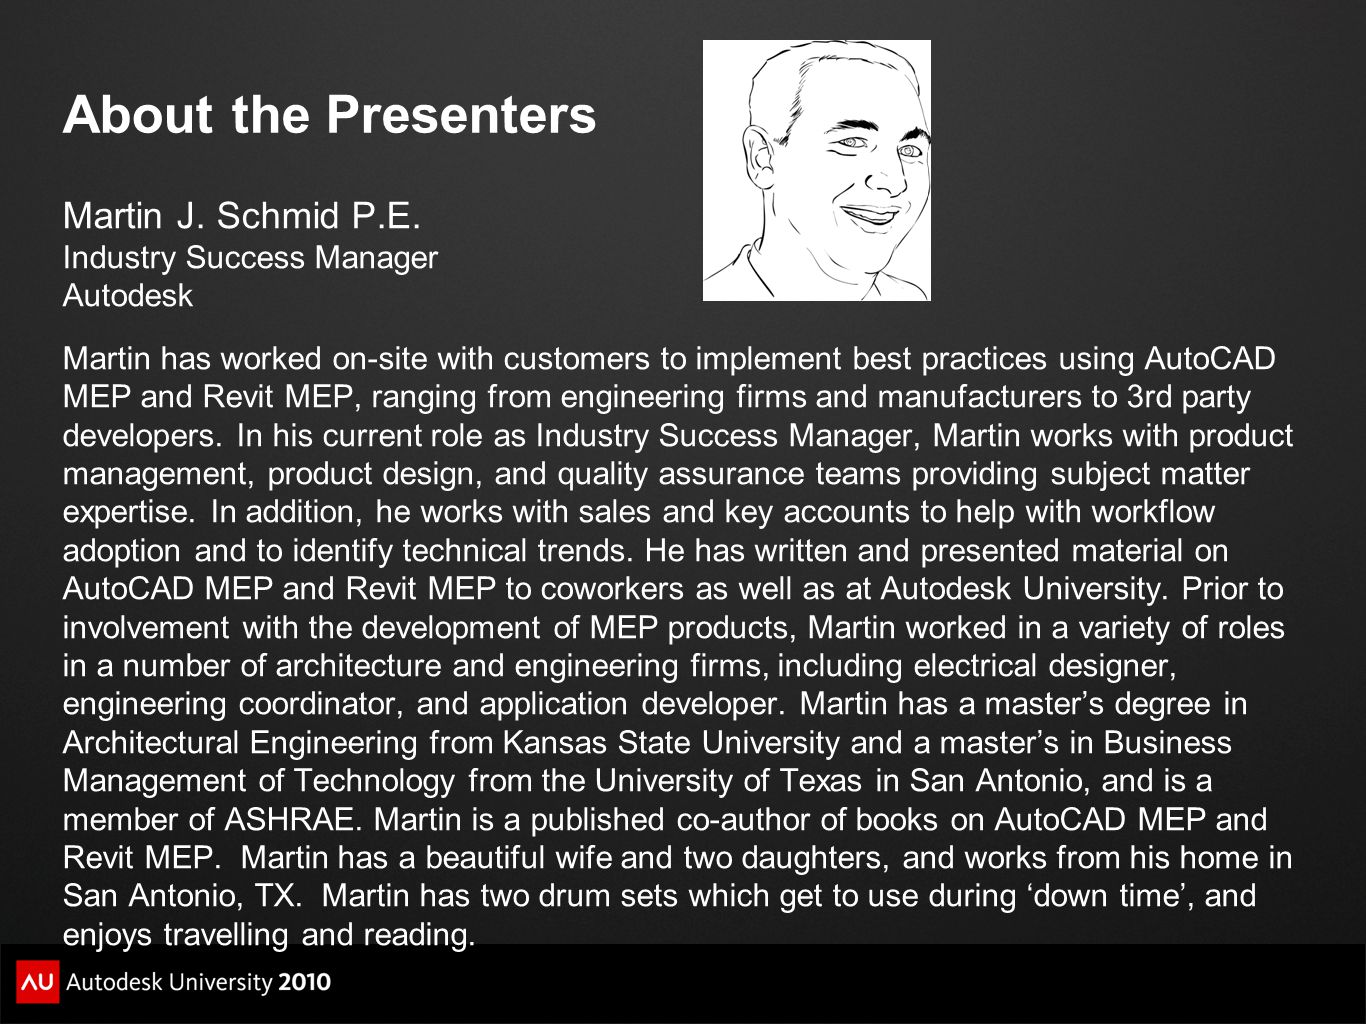 About the Presenters Martin J. Schmid P.E. Industry Success Manager Autodesk Martin has worked on-site with customers to implement best practices usin